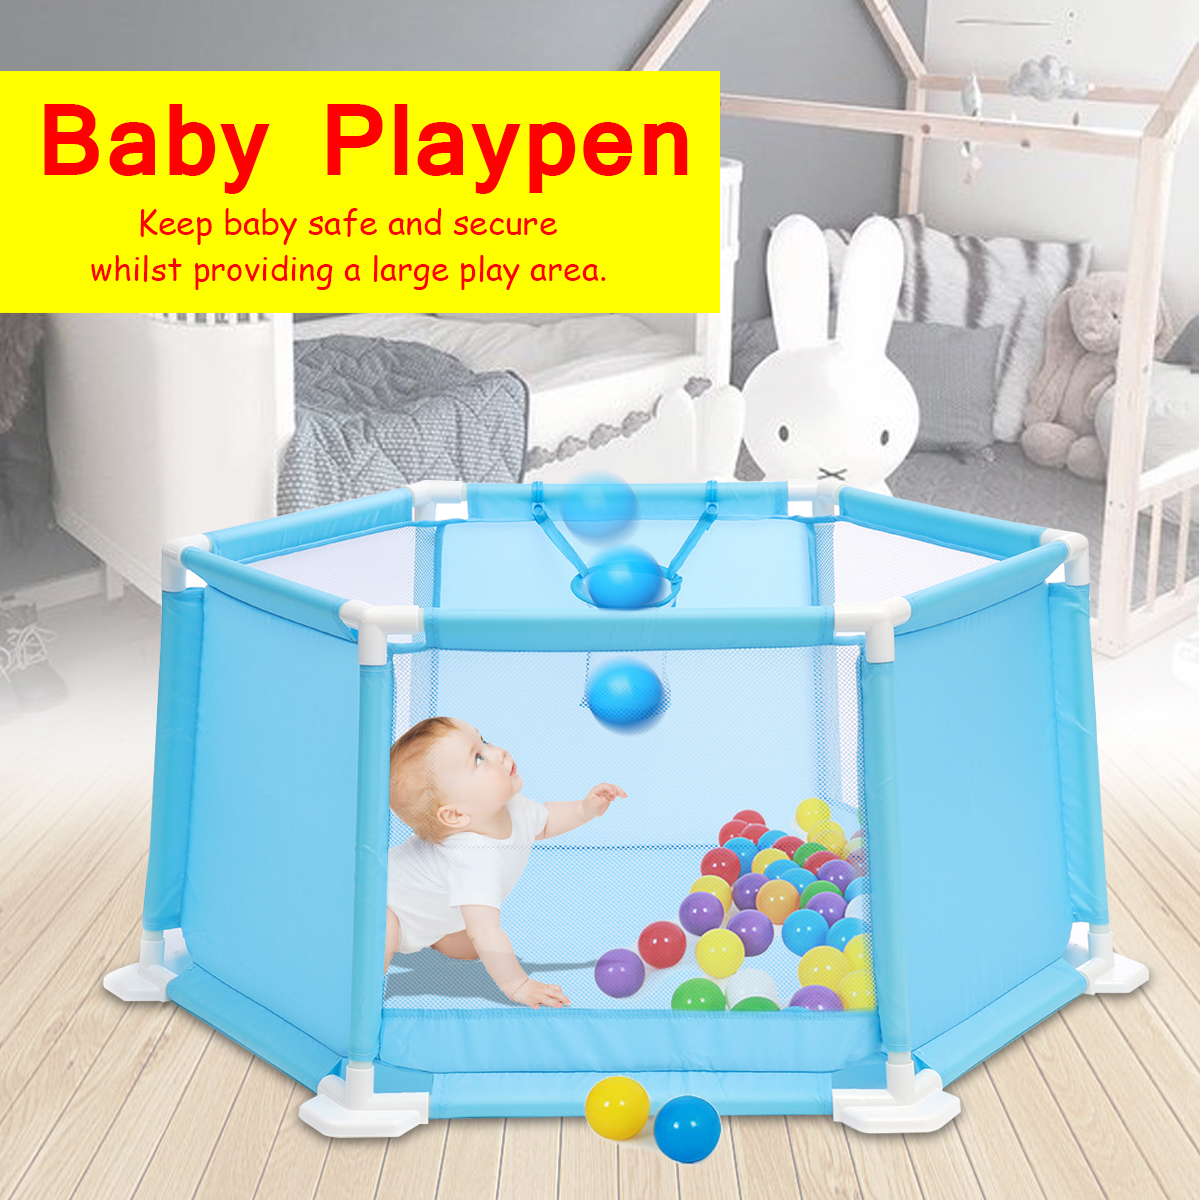 Baby Playpen How 2019 110cm Baby Playpen Portable Plastic Kids Safety Play Center Yard Home Indoor Outdoor Pen Fence For Child Play Tent Ball Pool From Vanilla14